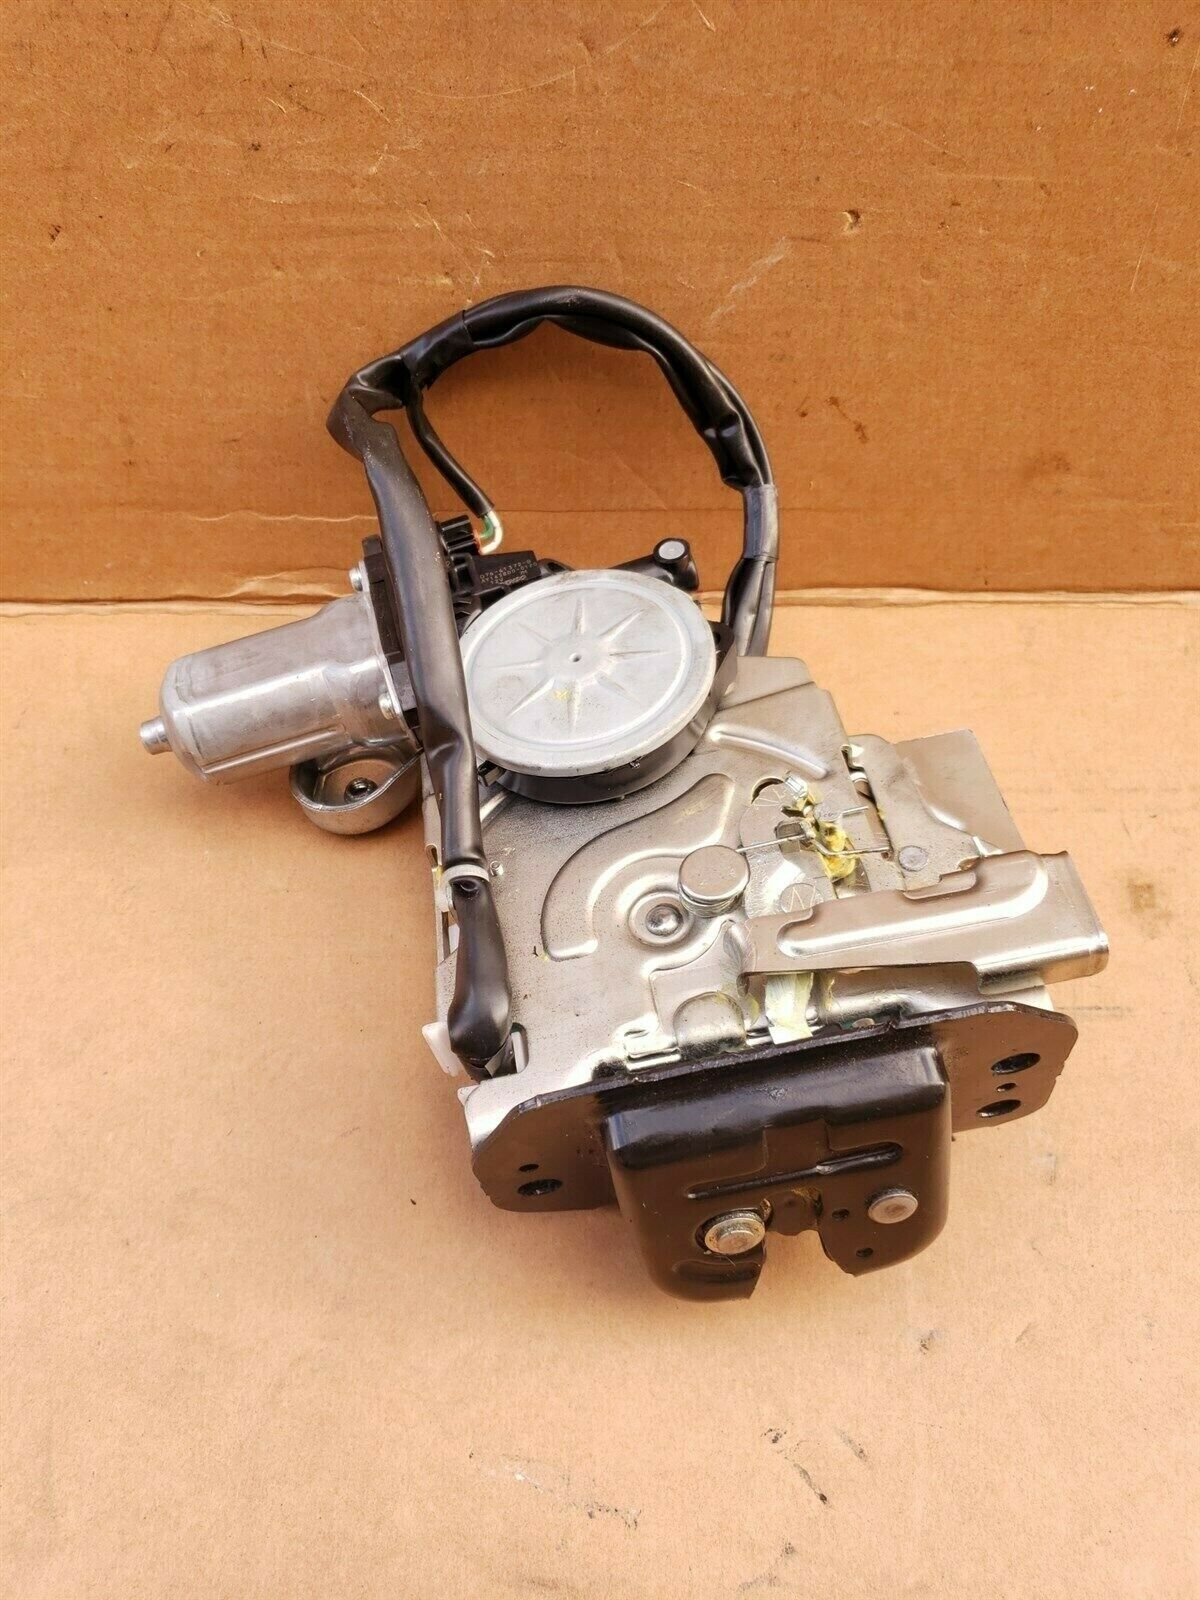 09-13 Ford Flex Rear Hatch Tailgate Liftgate Power Lock Latch Motor Actuator